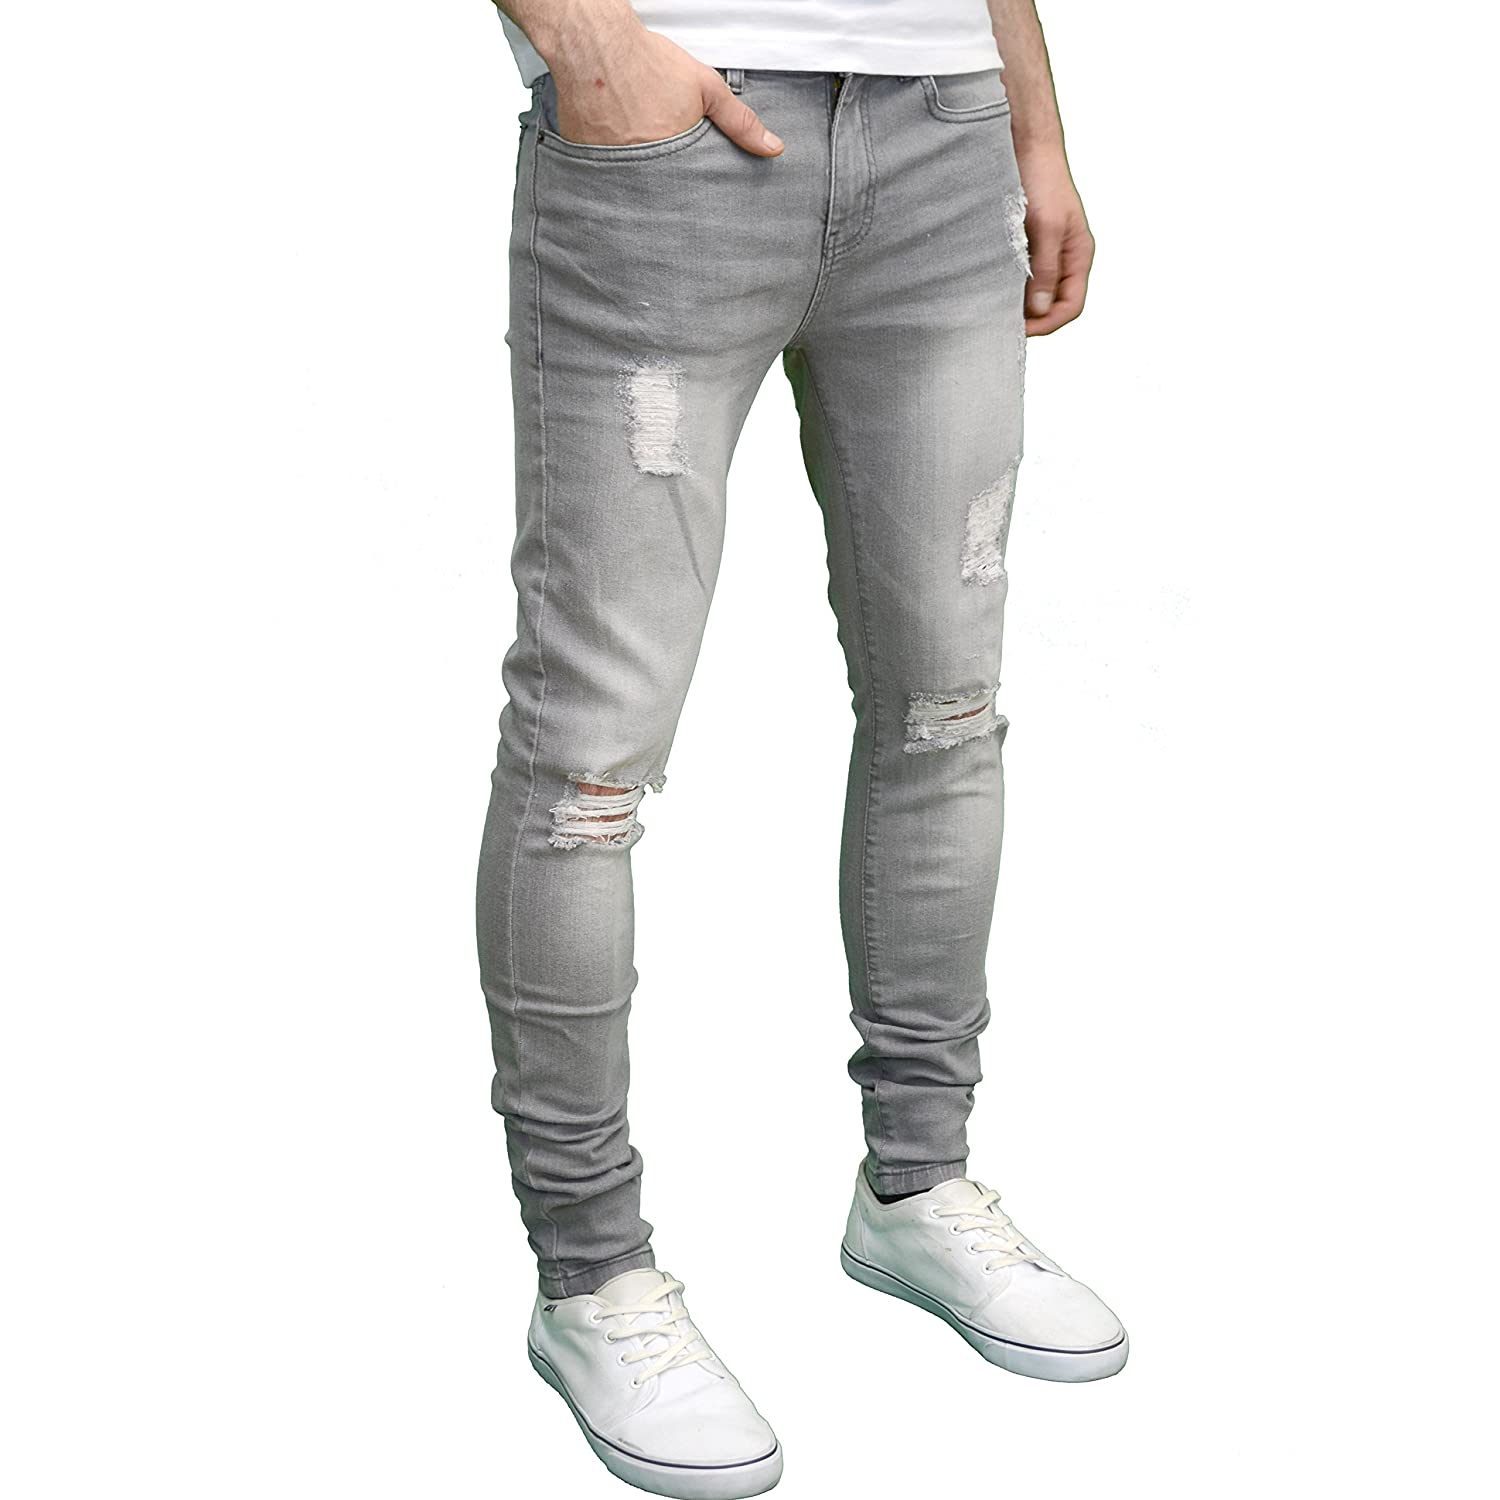 12bcd87a0 Enzo Mens Ripped Super Stretch Skinny Distressed Jeans (42W x 30L, Grey) at  Amazon Men's Clothing store: